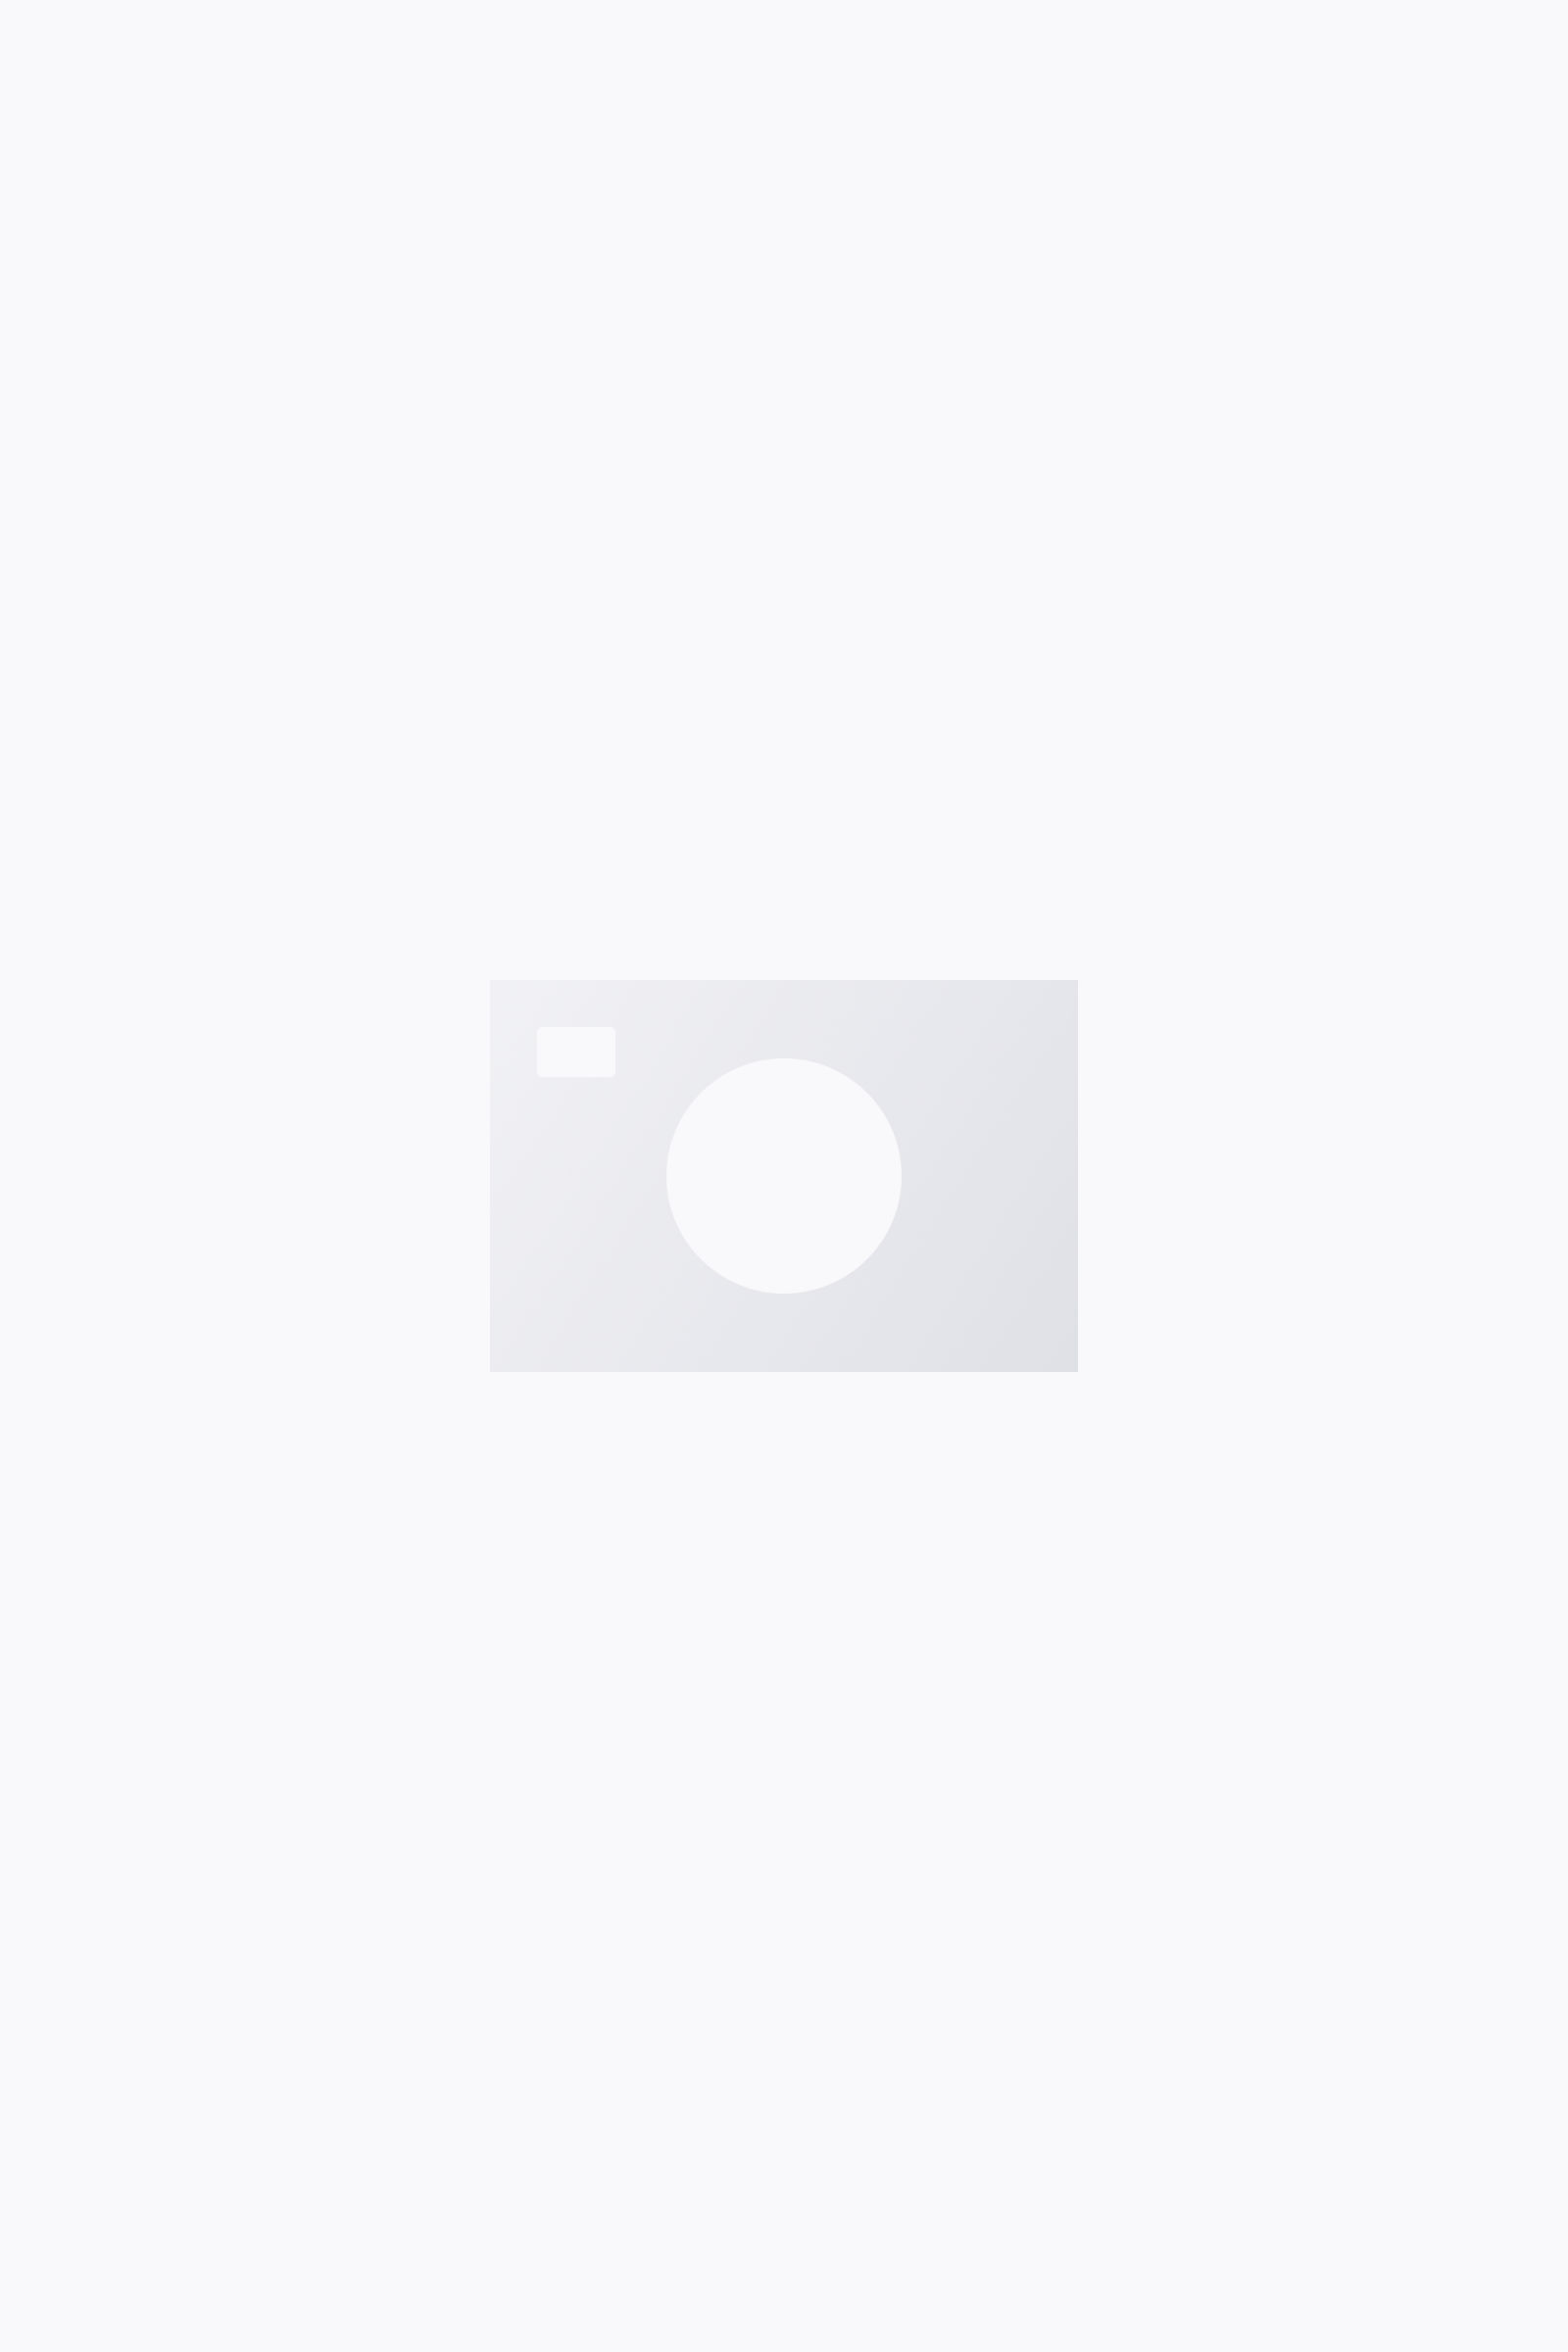 COS TEDDY ZIP-UP JACKET,red